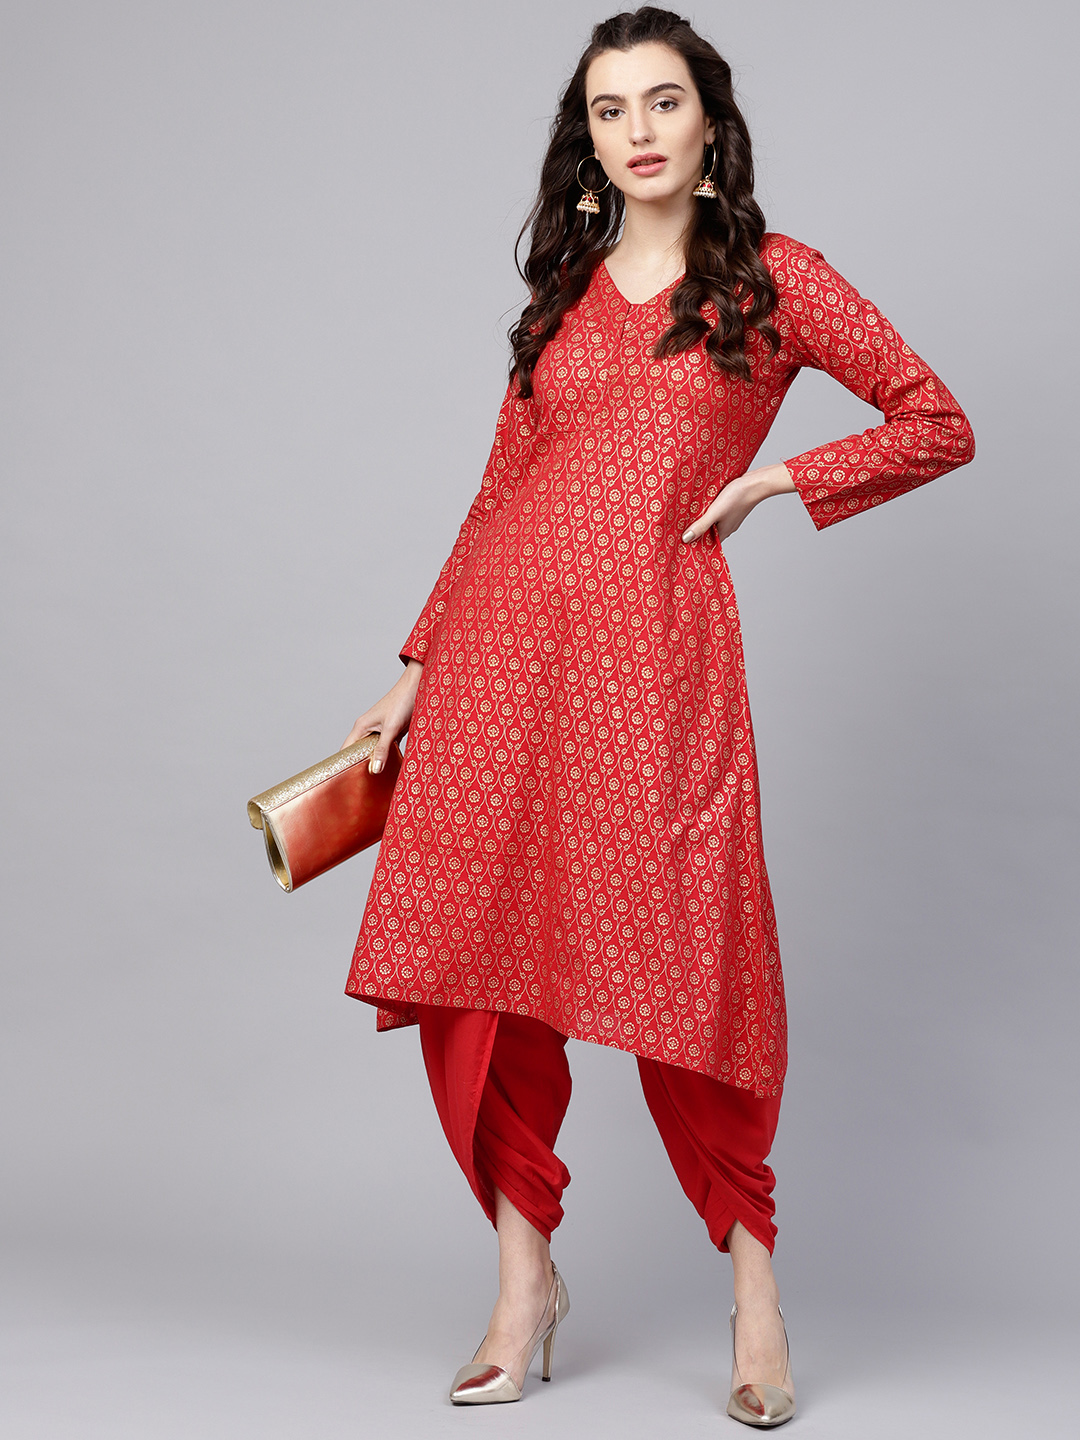 nayo-red-suit-dhoti-pants-what-to-wear-for-first-lohri-after-wedding